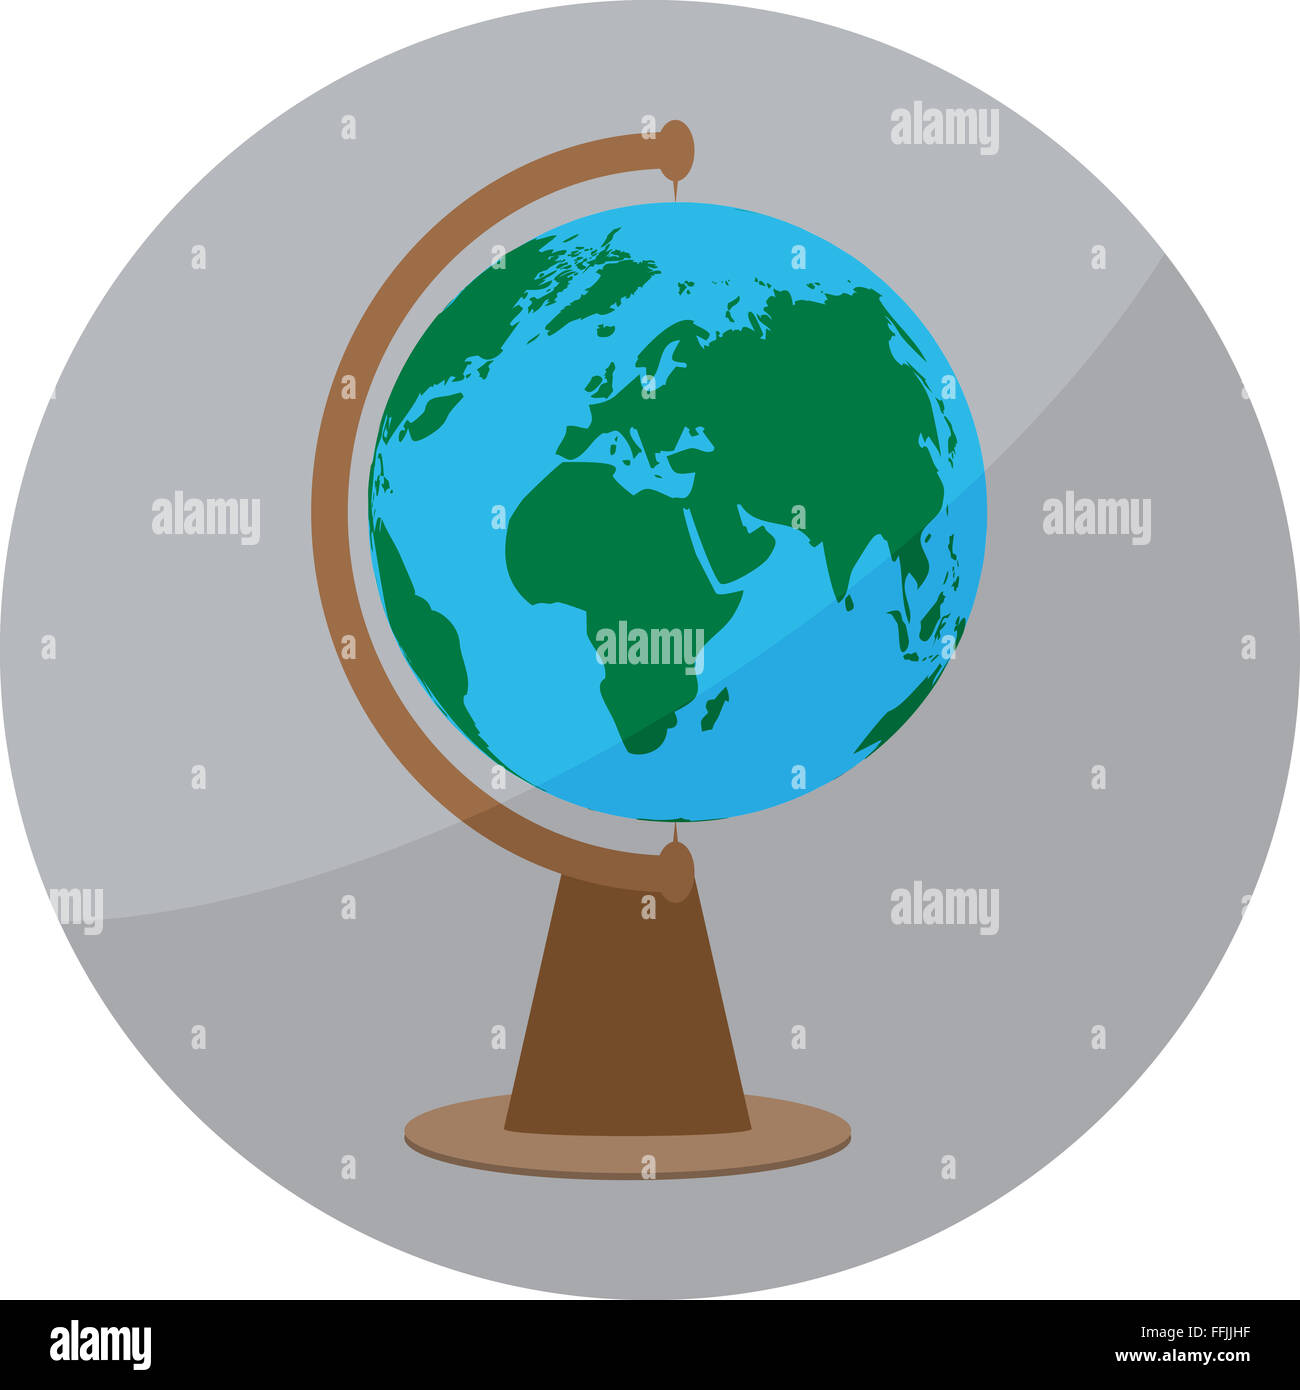 Icon globe sign globe badge app sphere ball world earth map icon globe sign globe badge app sphere ball world earth map geography travel vector abstract flat design illustration gumiabroncs Choice Image